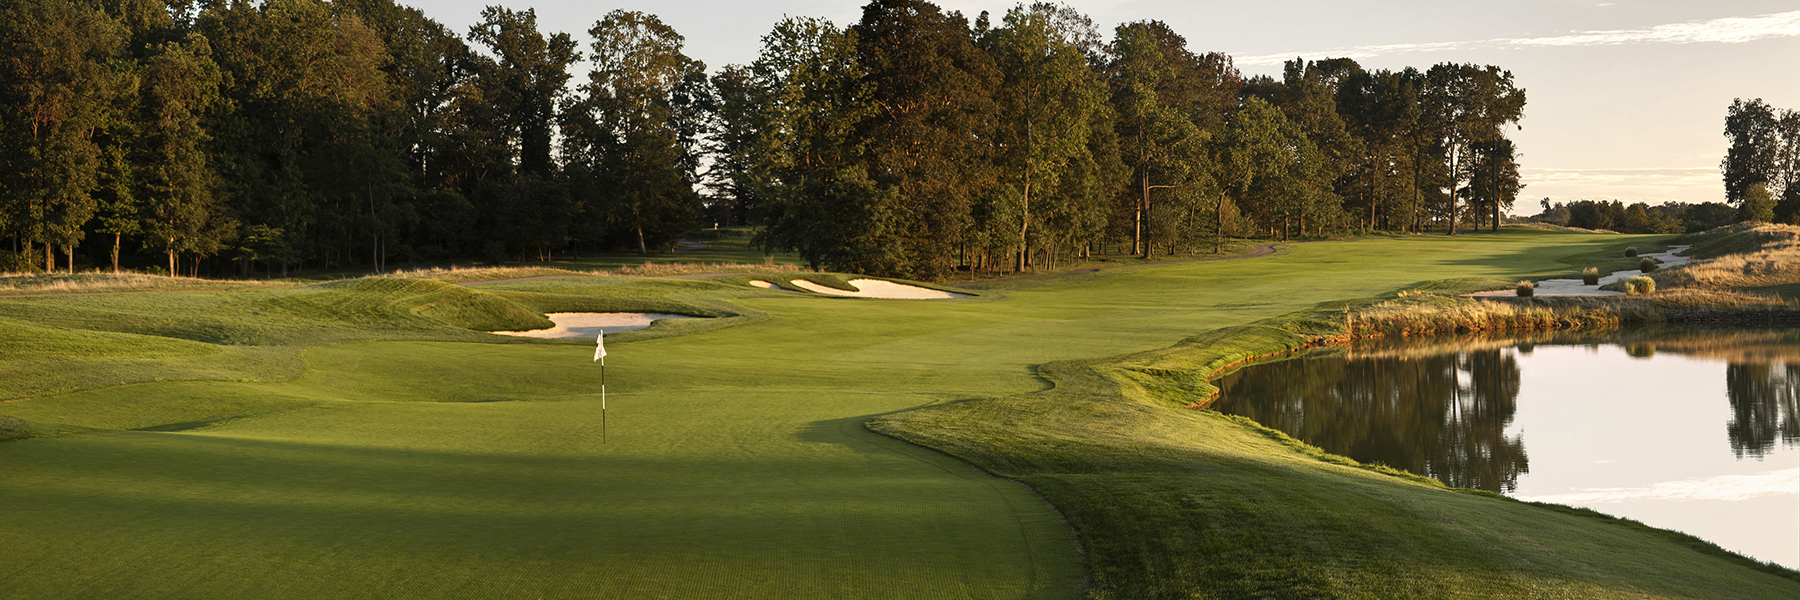 Rivercrest Golf Club And Preserve The Club For Friends And Family